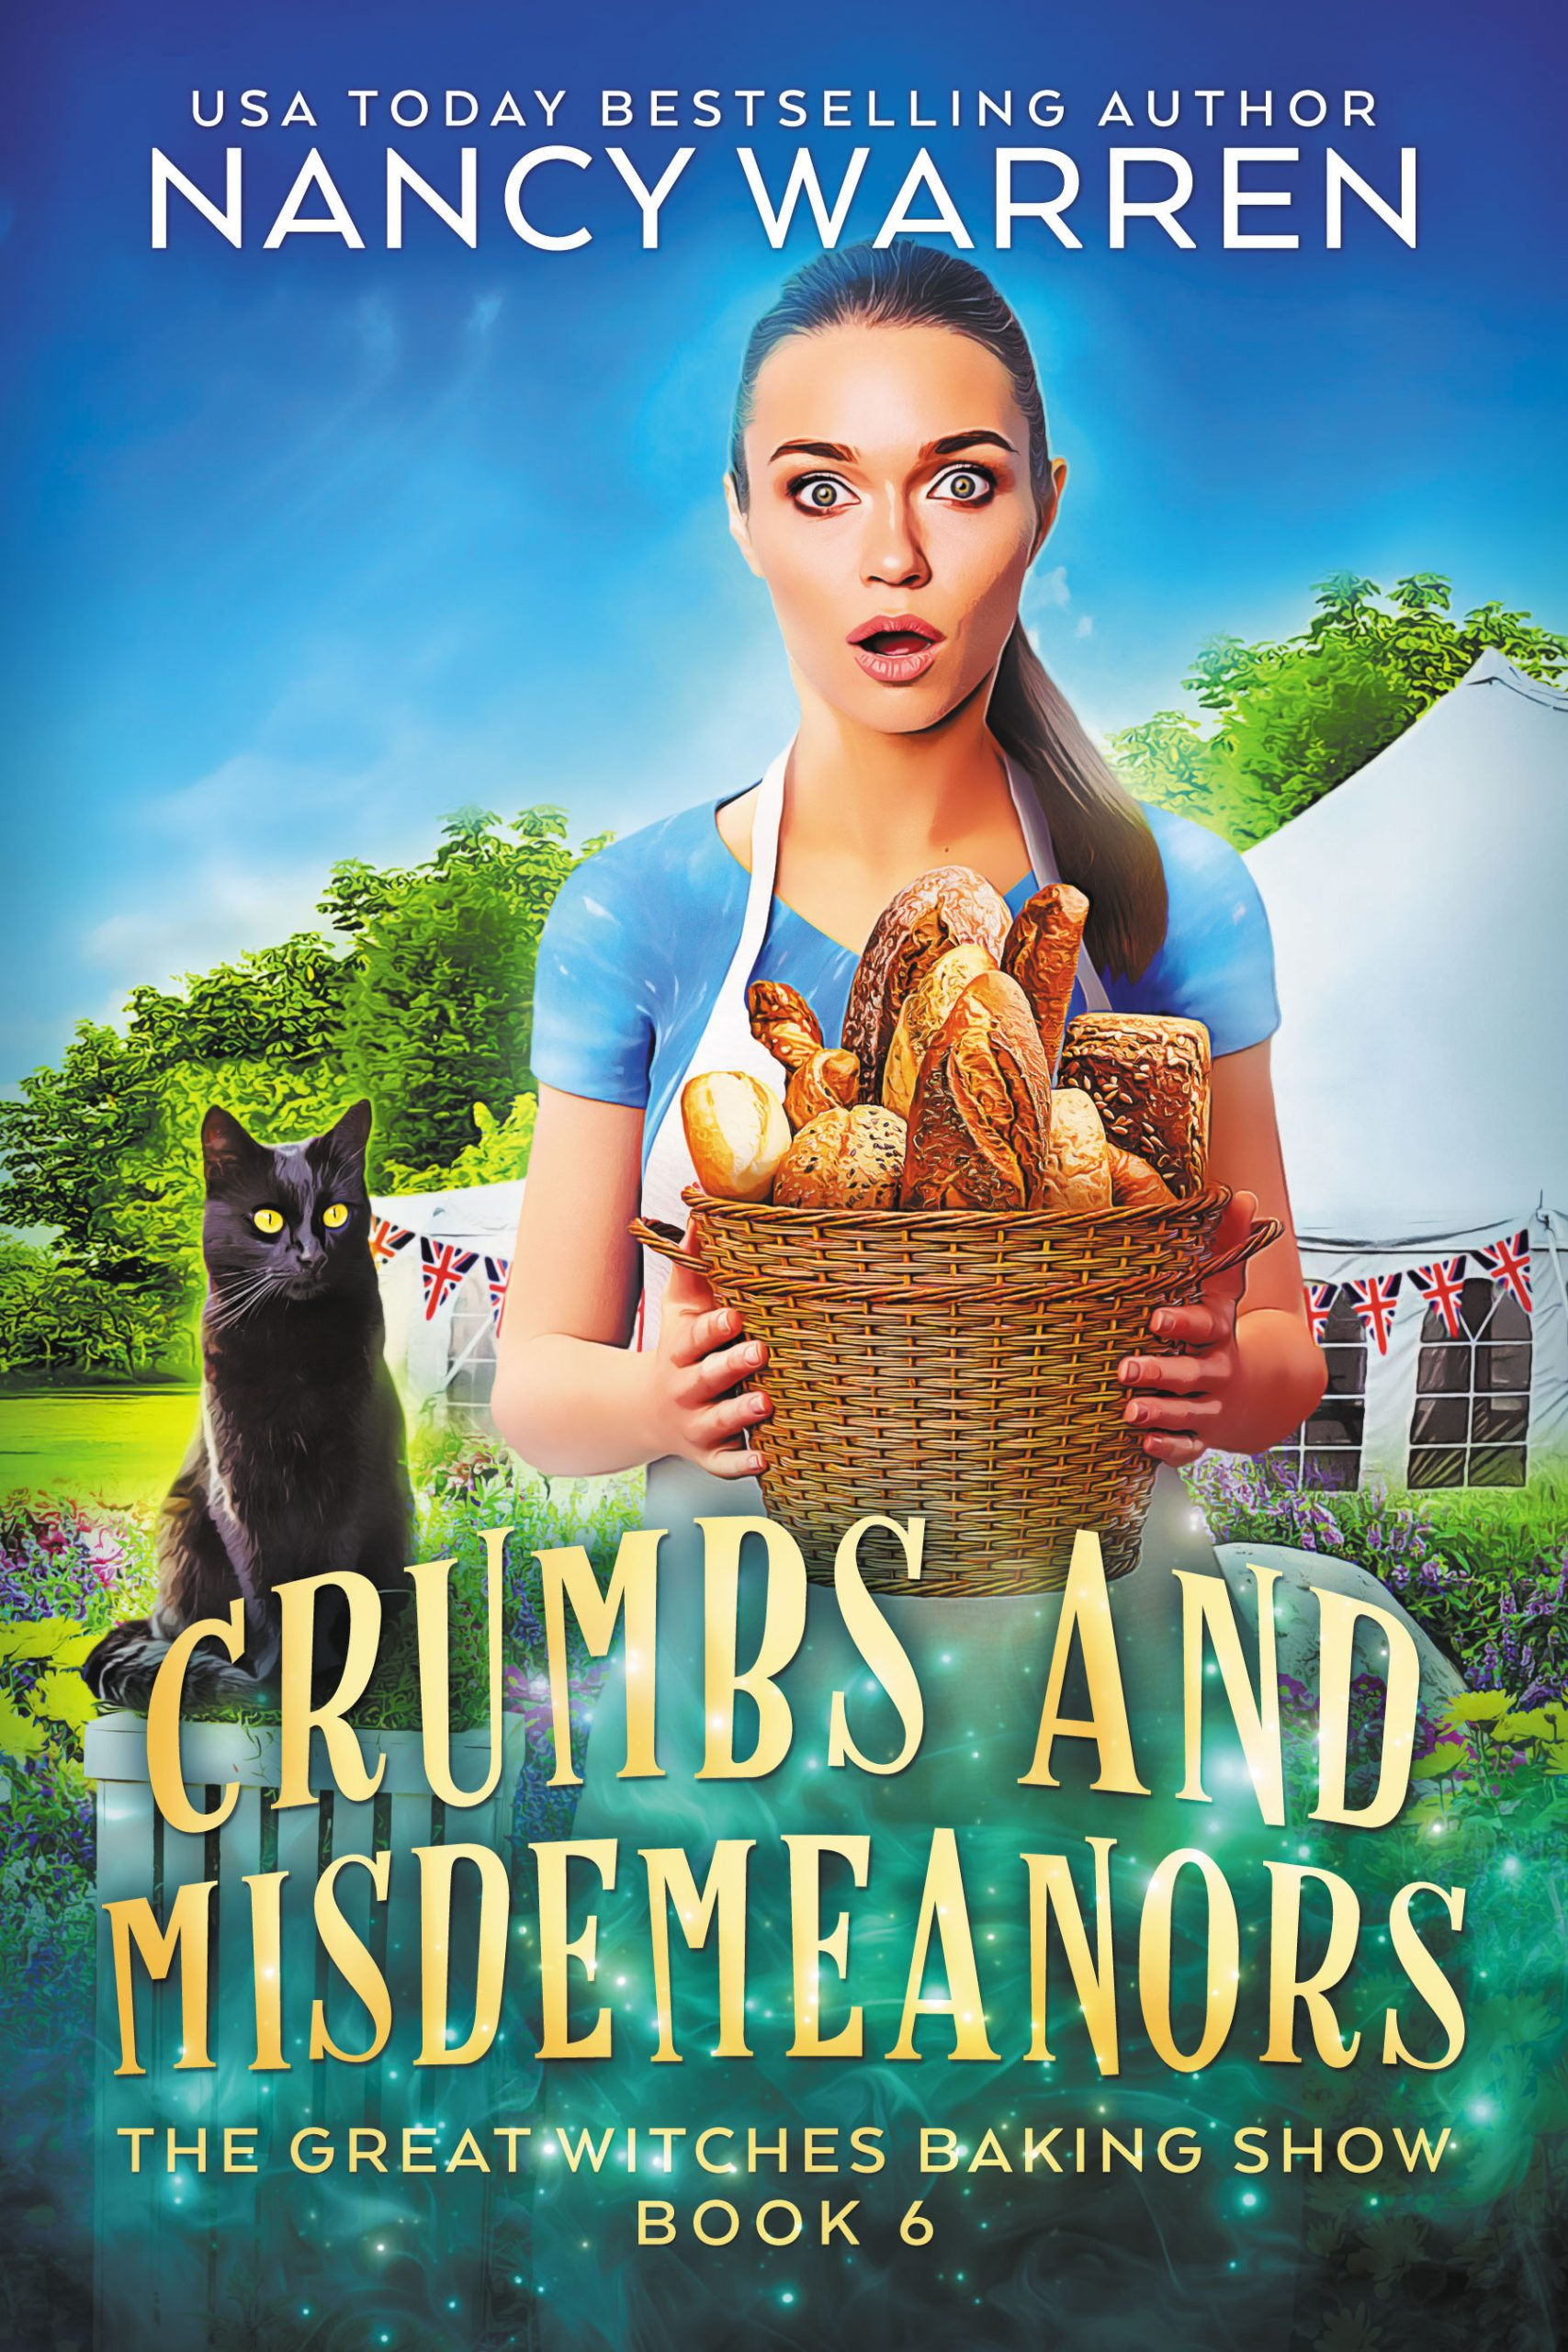 Crumbs and Misdemeanors by Nancy Warren